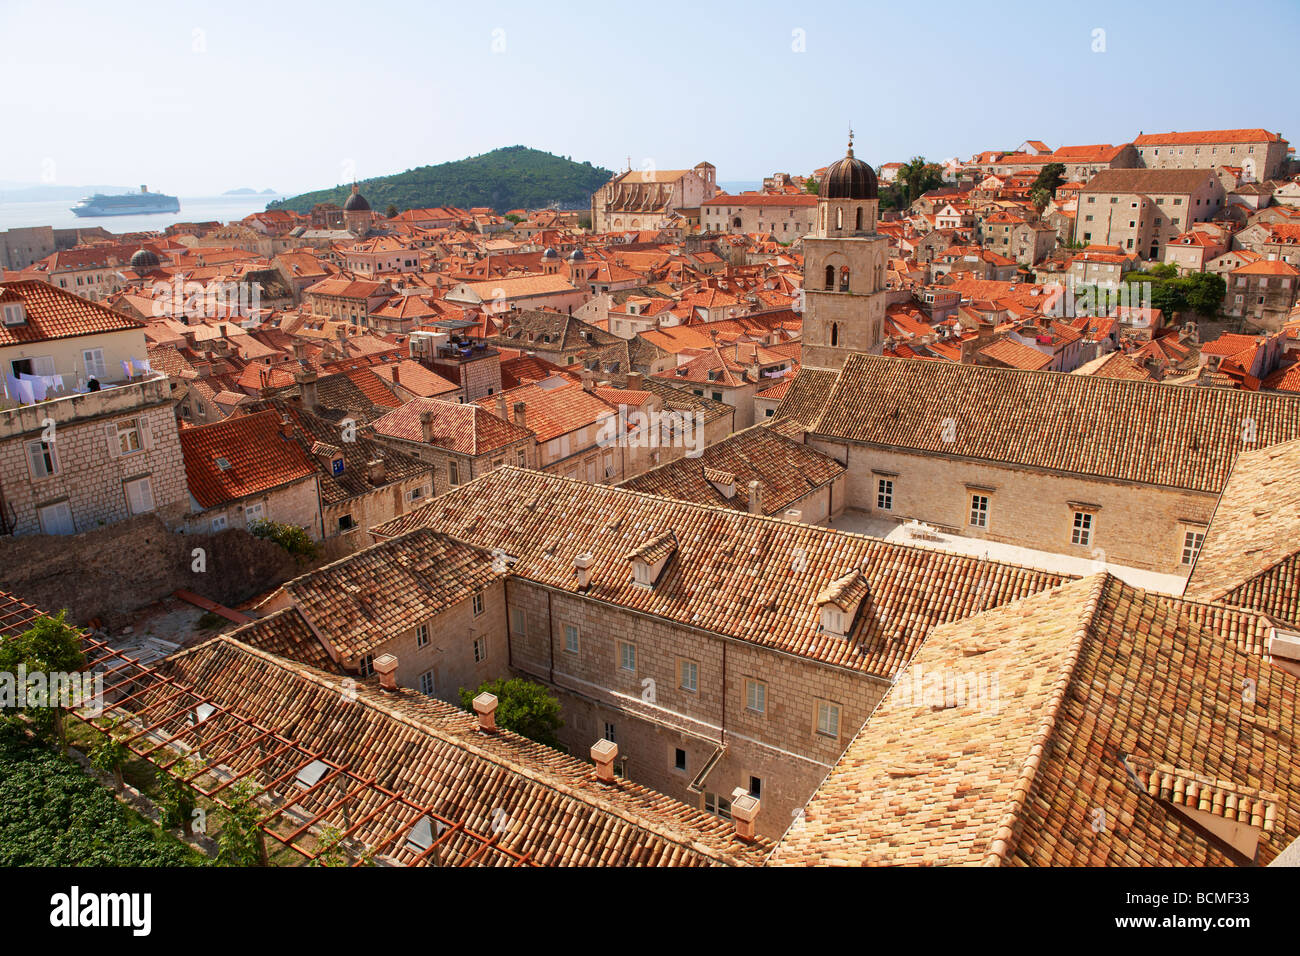 roof tops and courtyards of Dubrovnik - Croatia - Stock Image